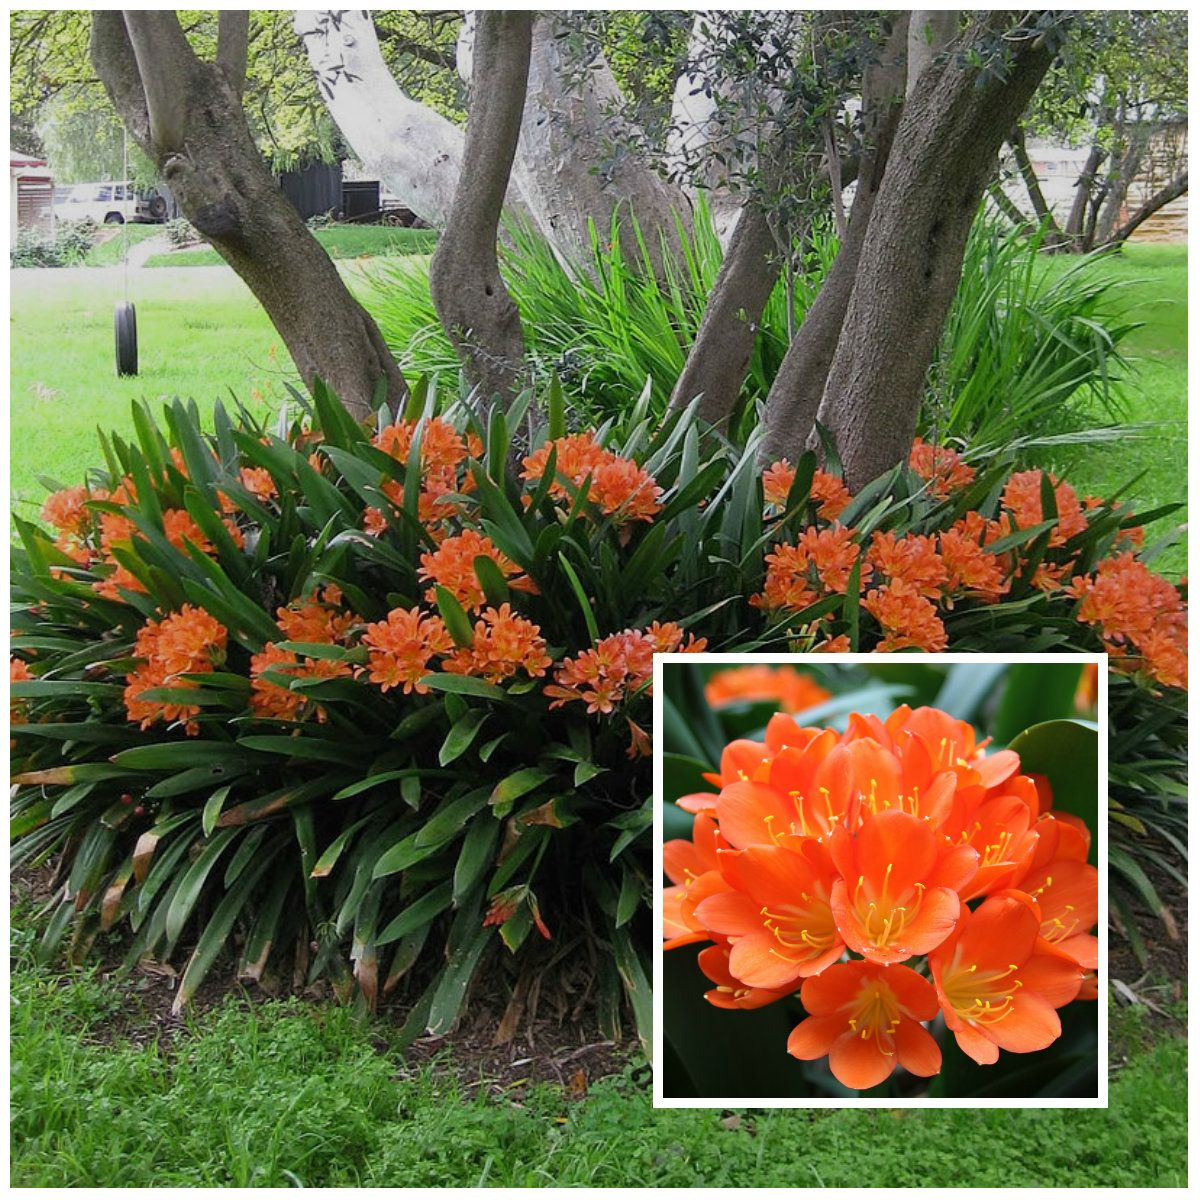 fire lily clivia miniata is a shade loving plant flower